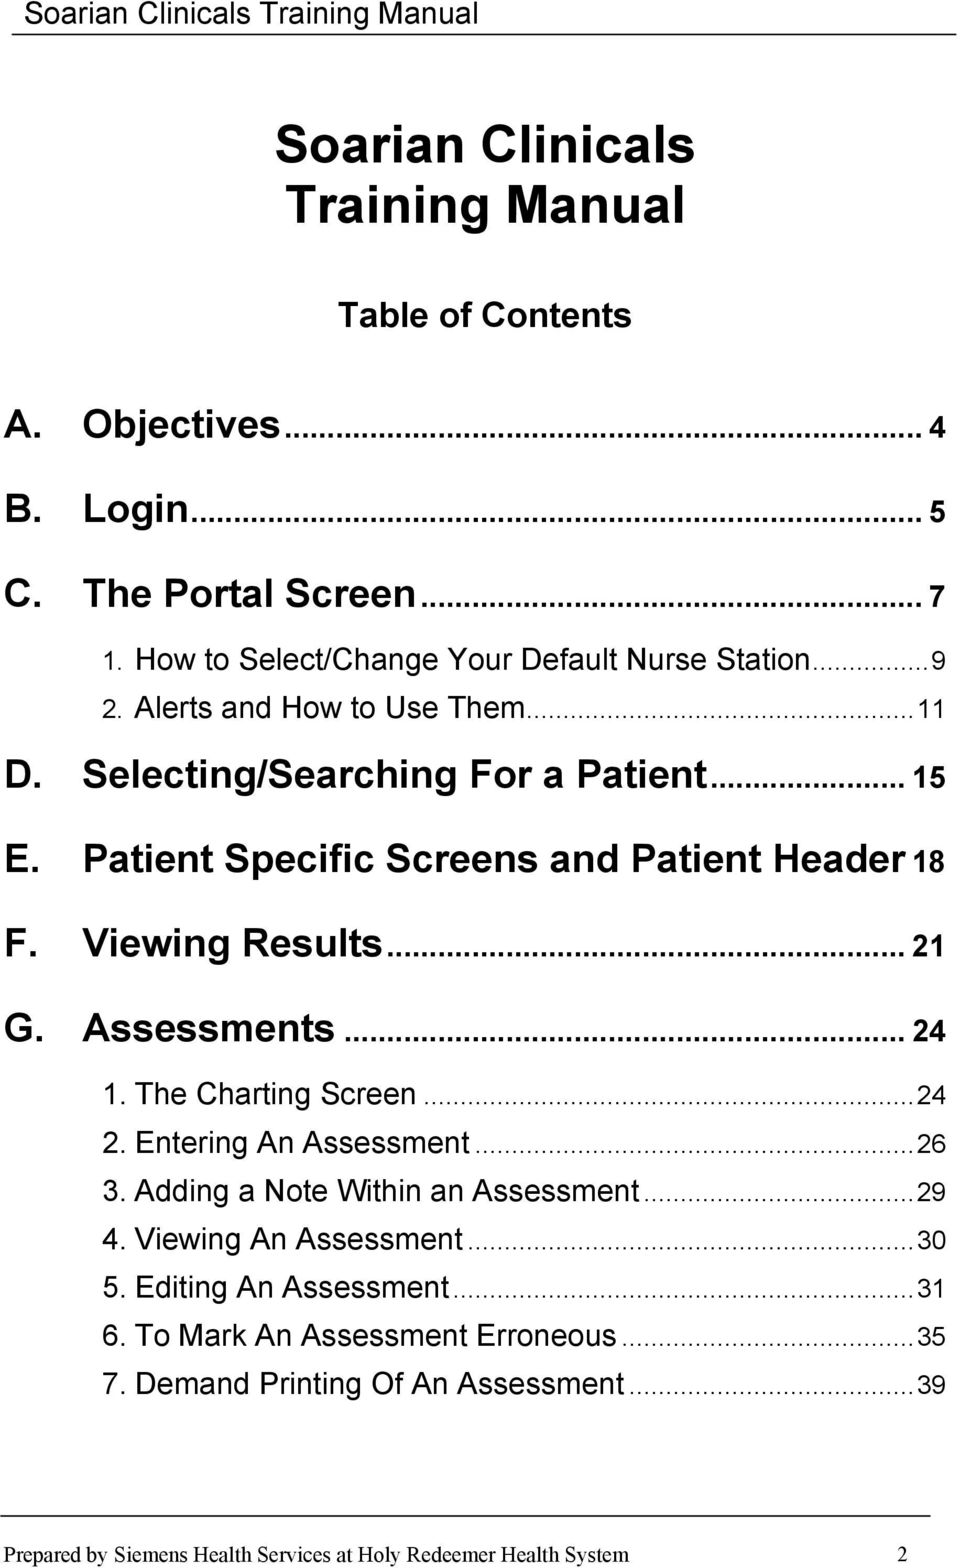 Soarian manual array soarian clinicals training manual for current nursing staff rh docplayer net fandeluxe Image collections